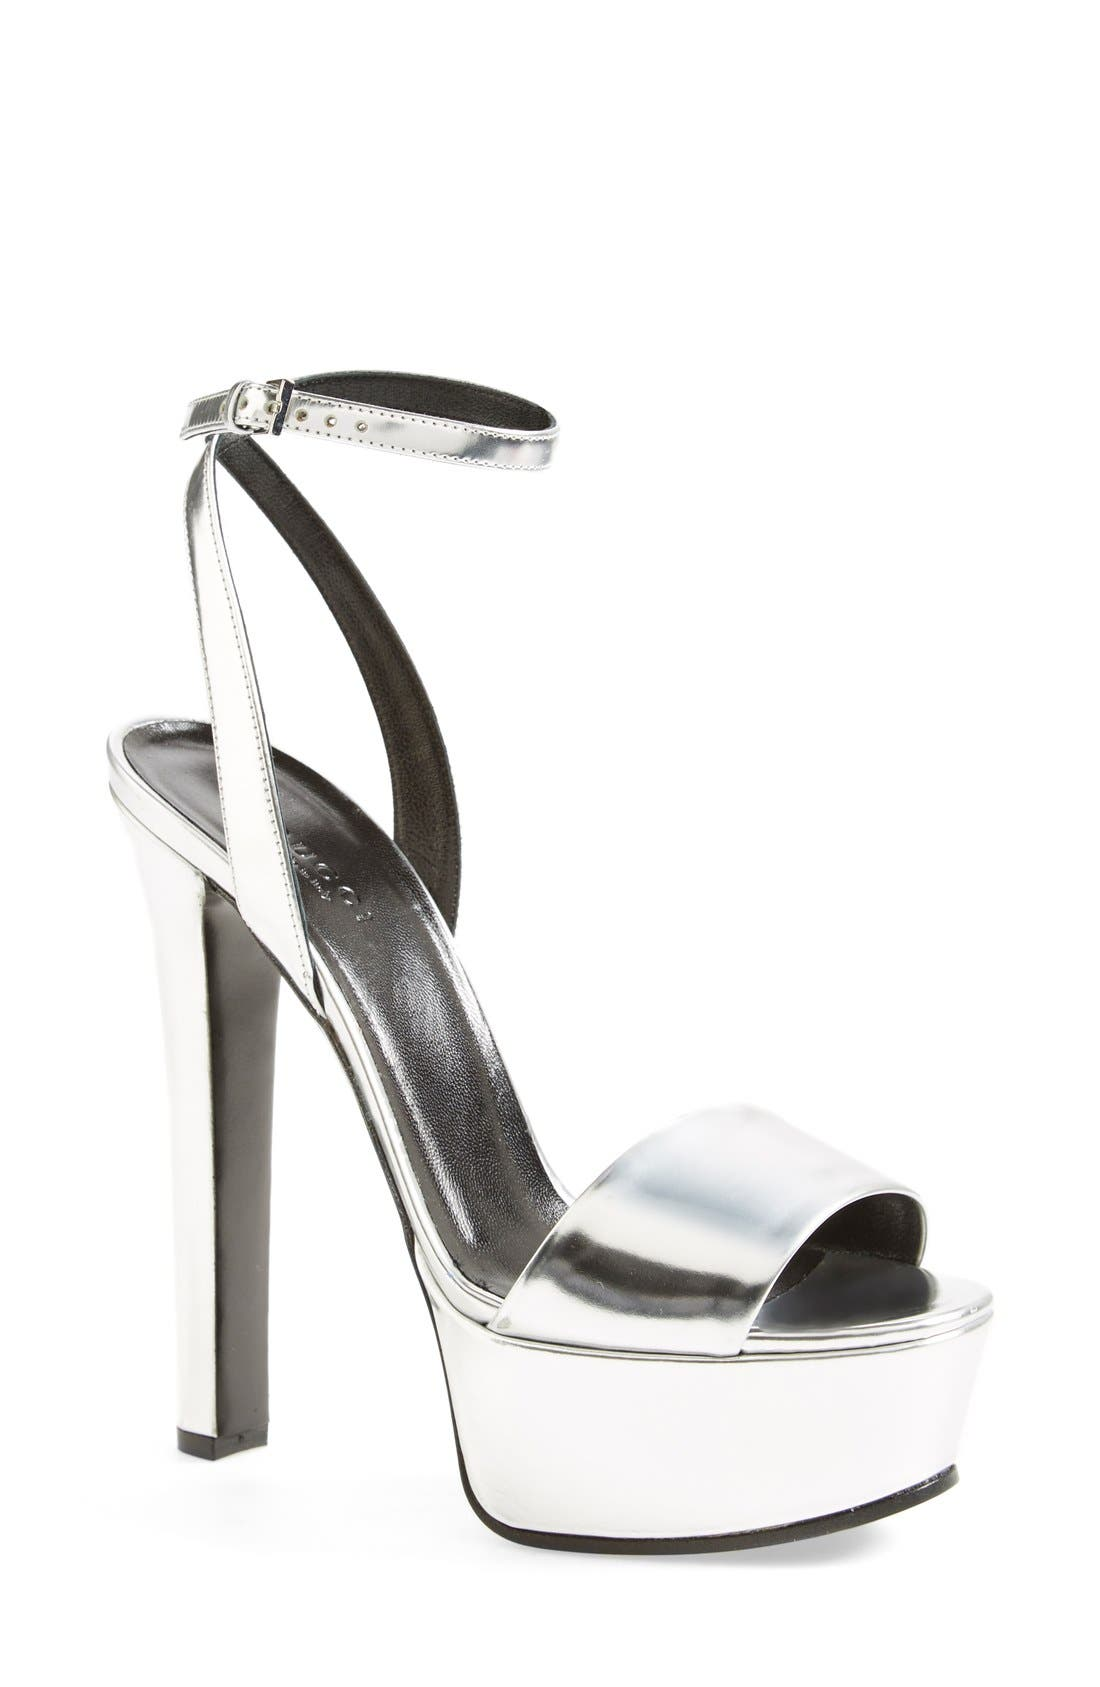 Alternate Image 1 Selected - Gucci 'Leila' Metallic Platform Sandal (Women)